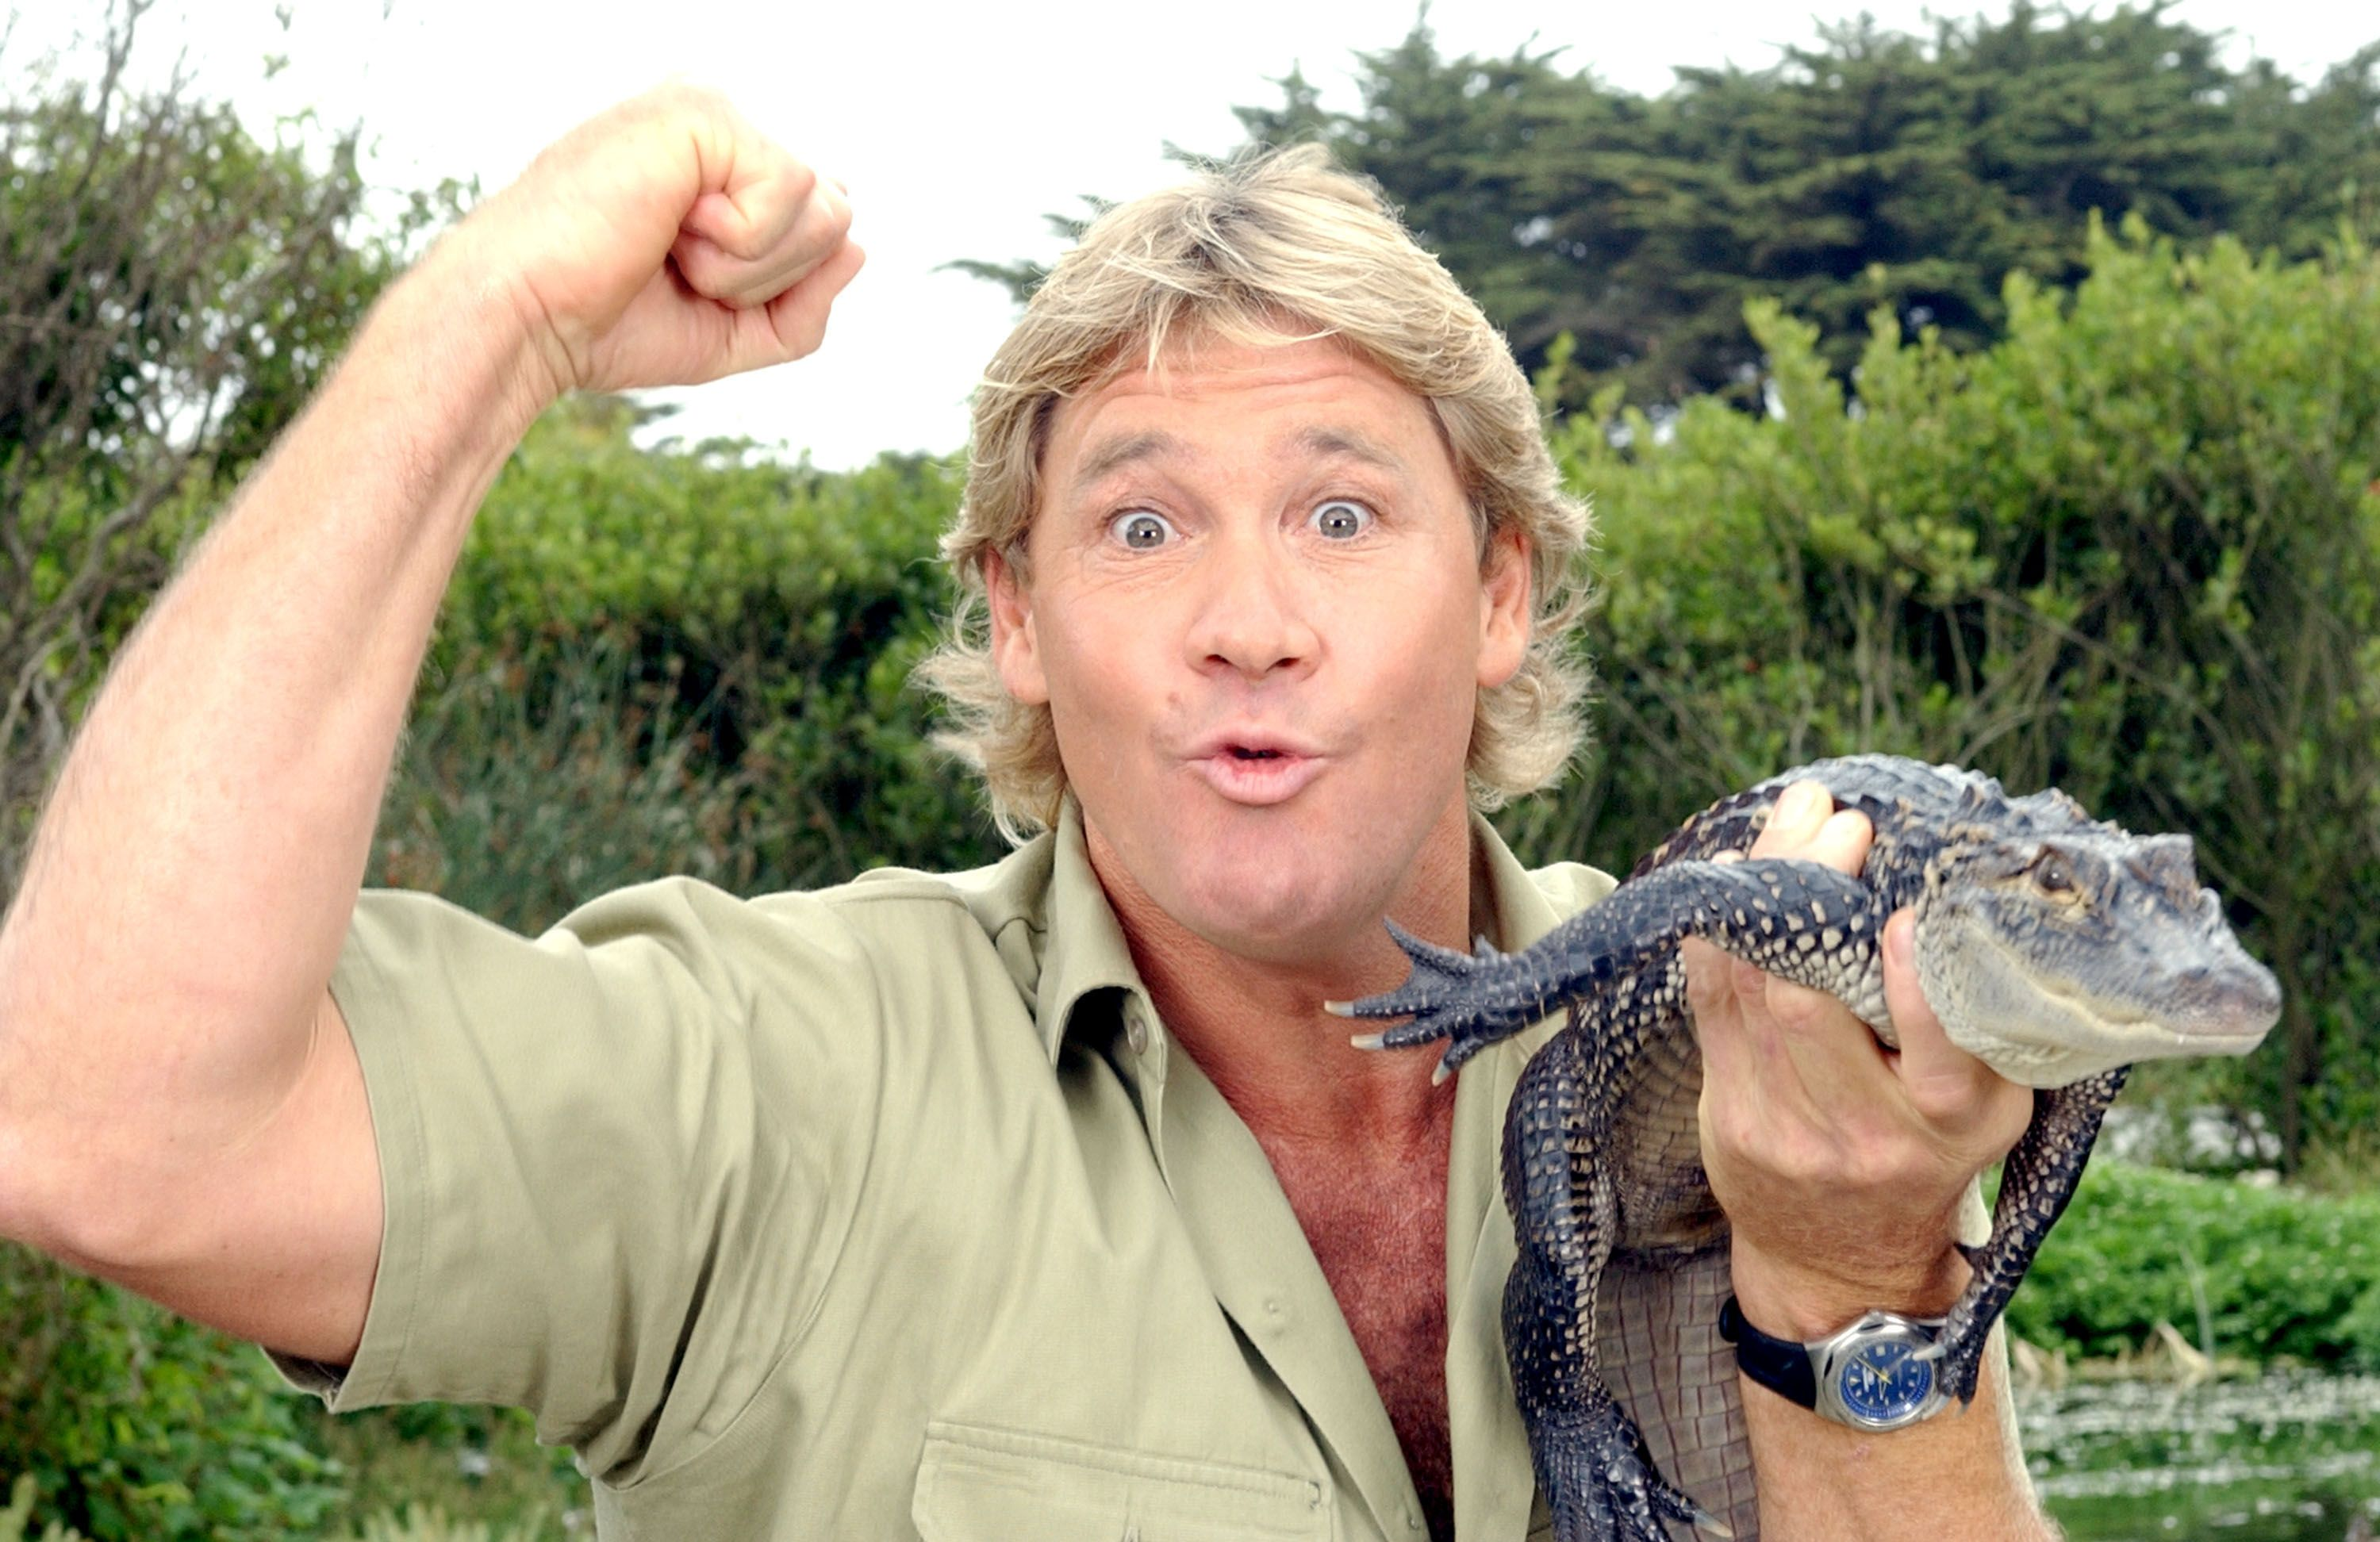 Late Steve Irwin, posed with a three foot long alligator at the San Francisco Zoo on June 26, 2002 | Photo: Getty Images